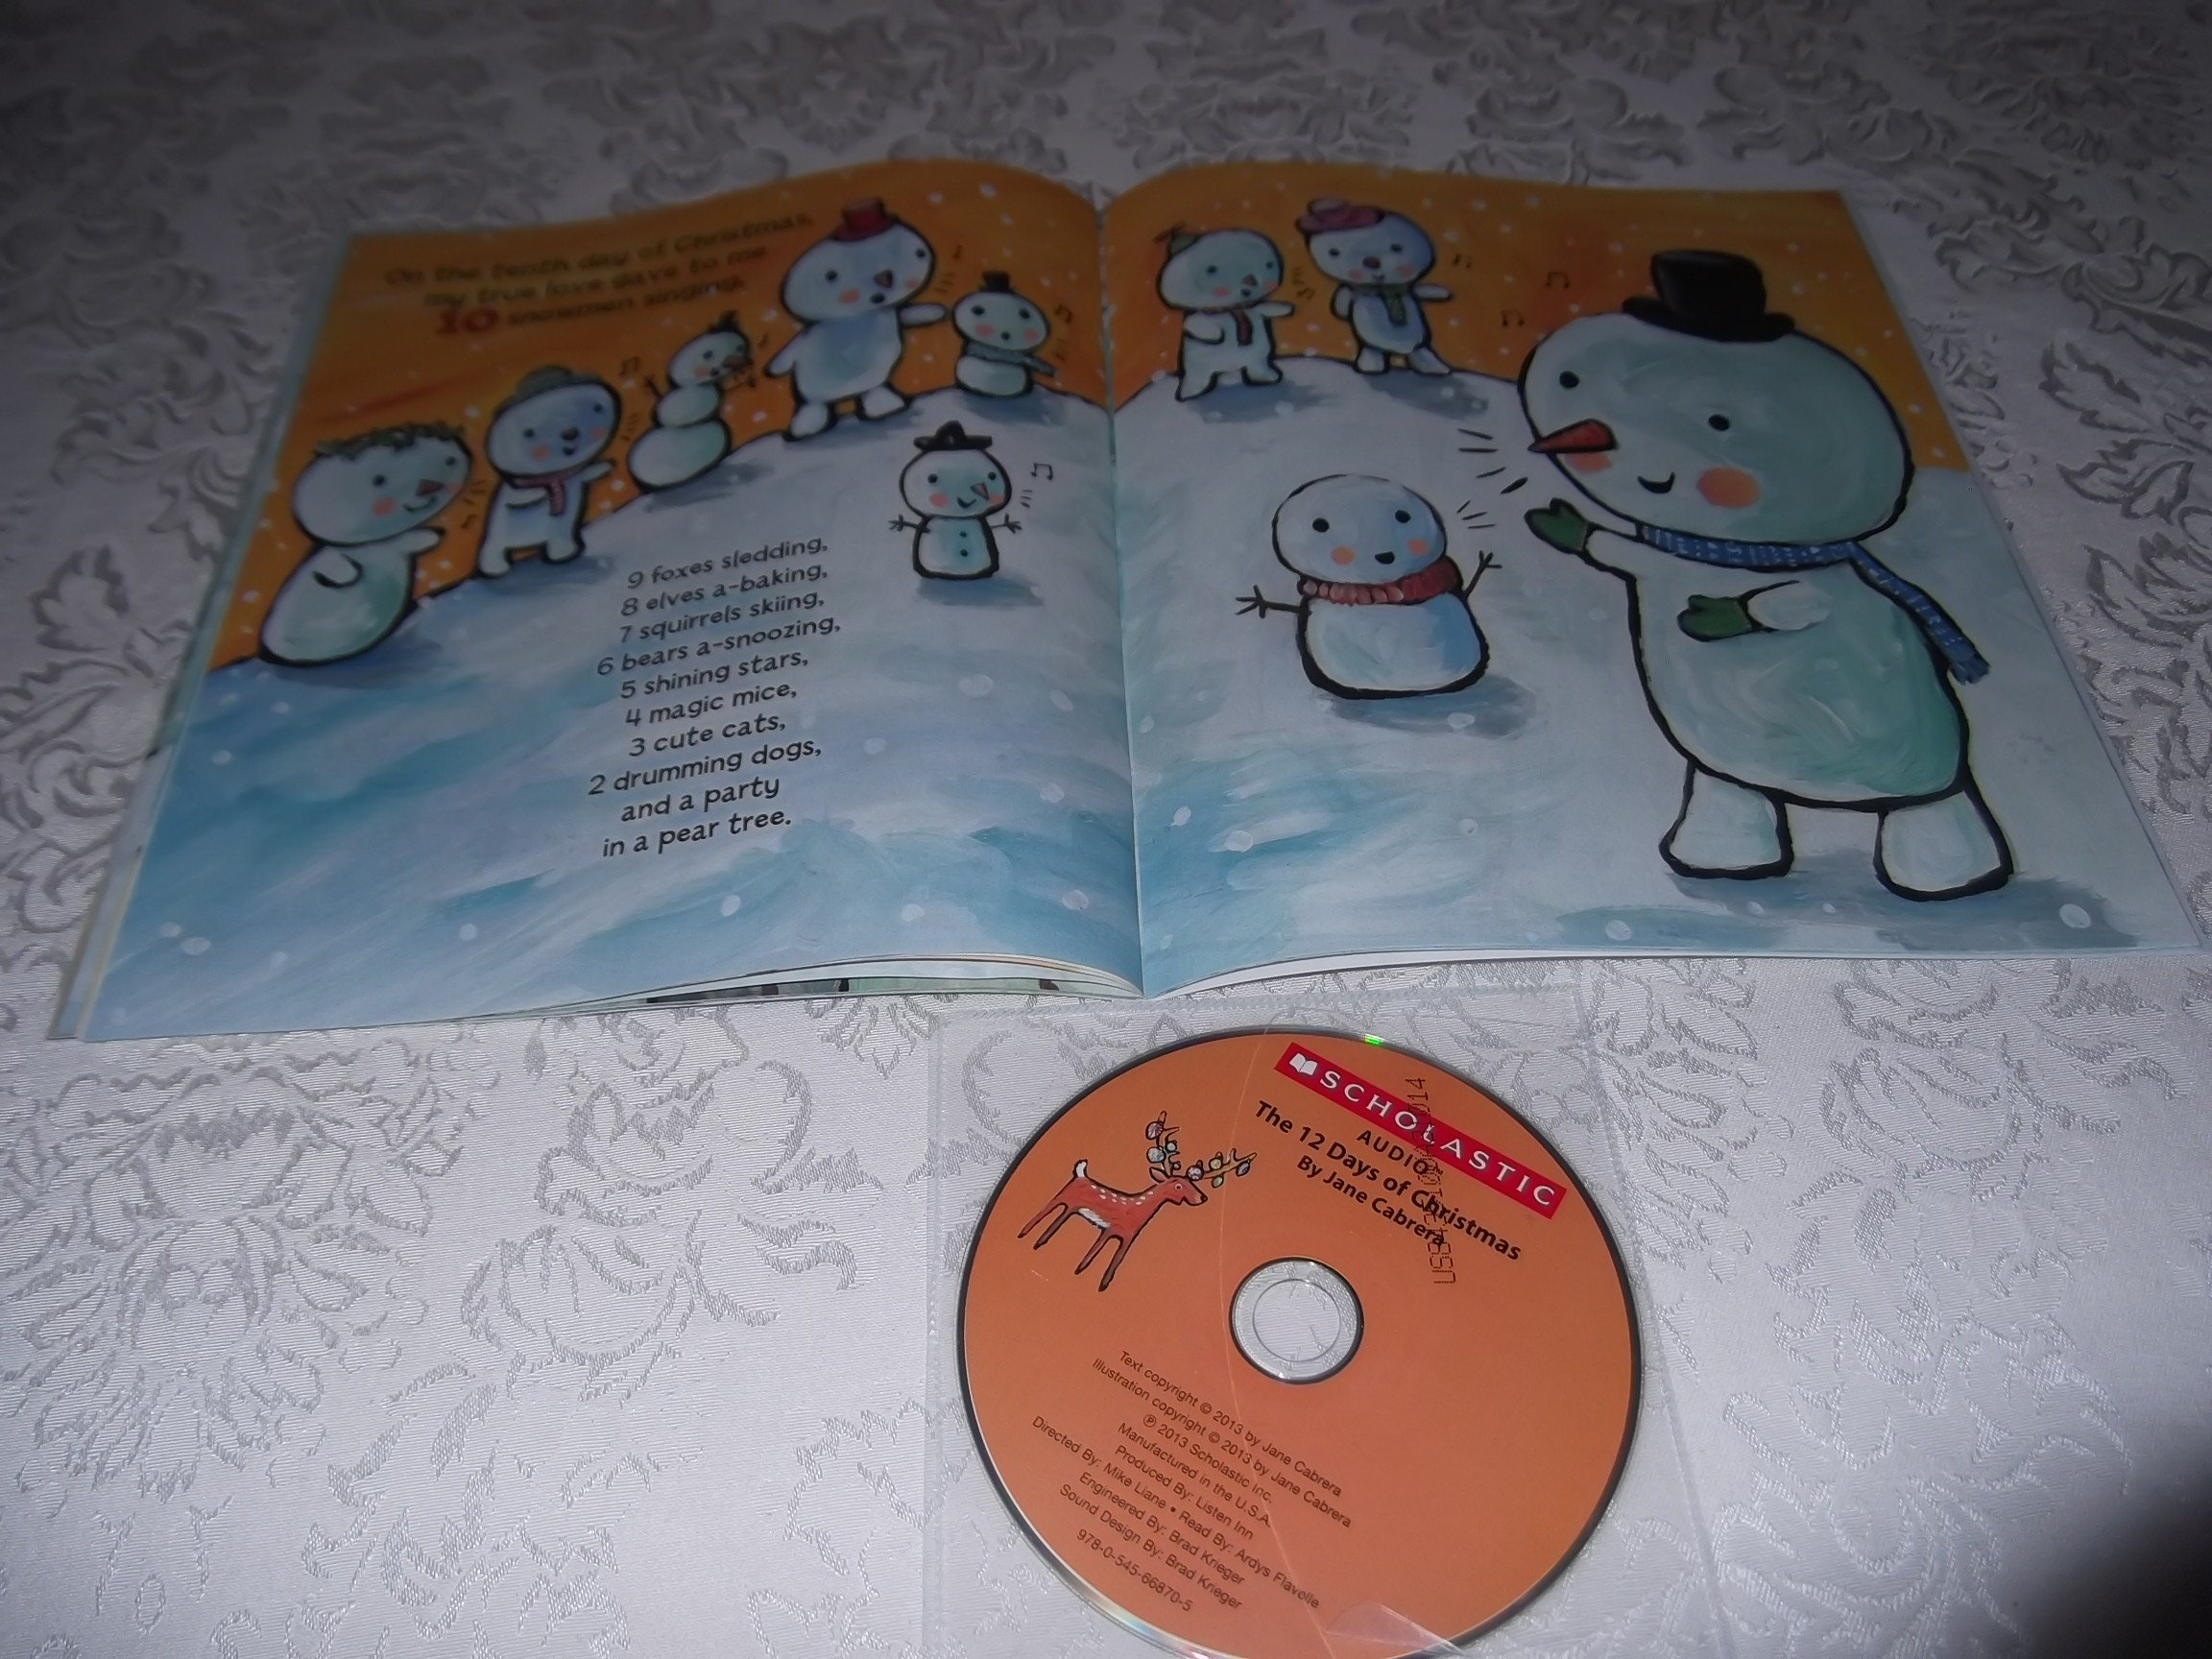 Image 5 of The 12 Days of CHRISTMAS Jane Cabrera Brand New Audio CD and Softcover